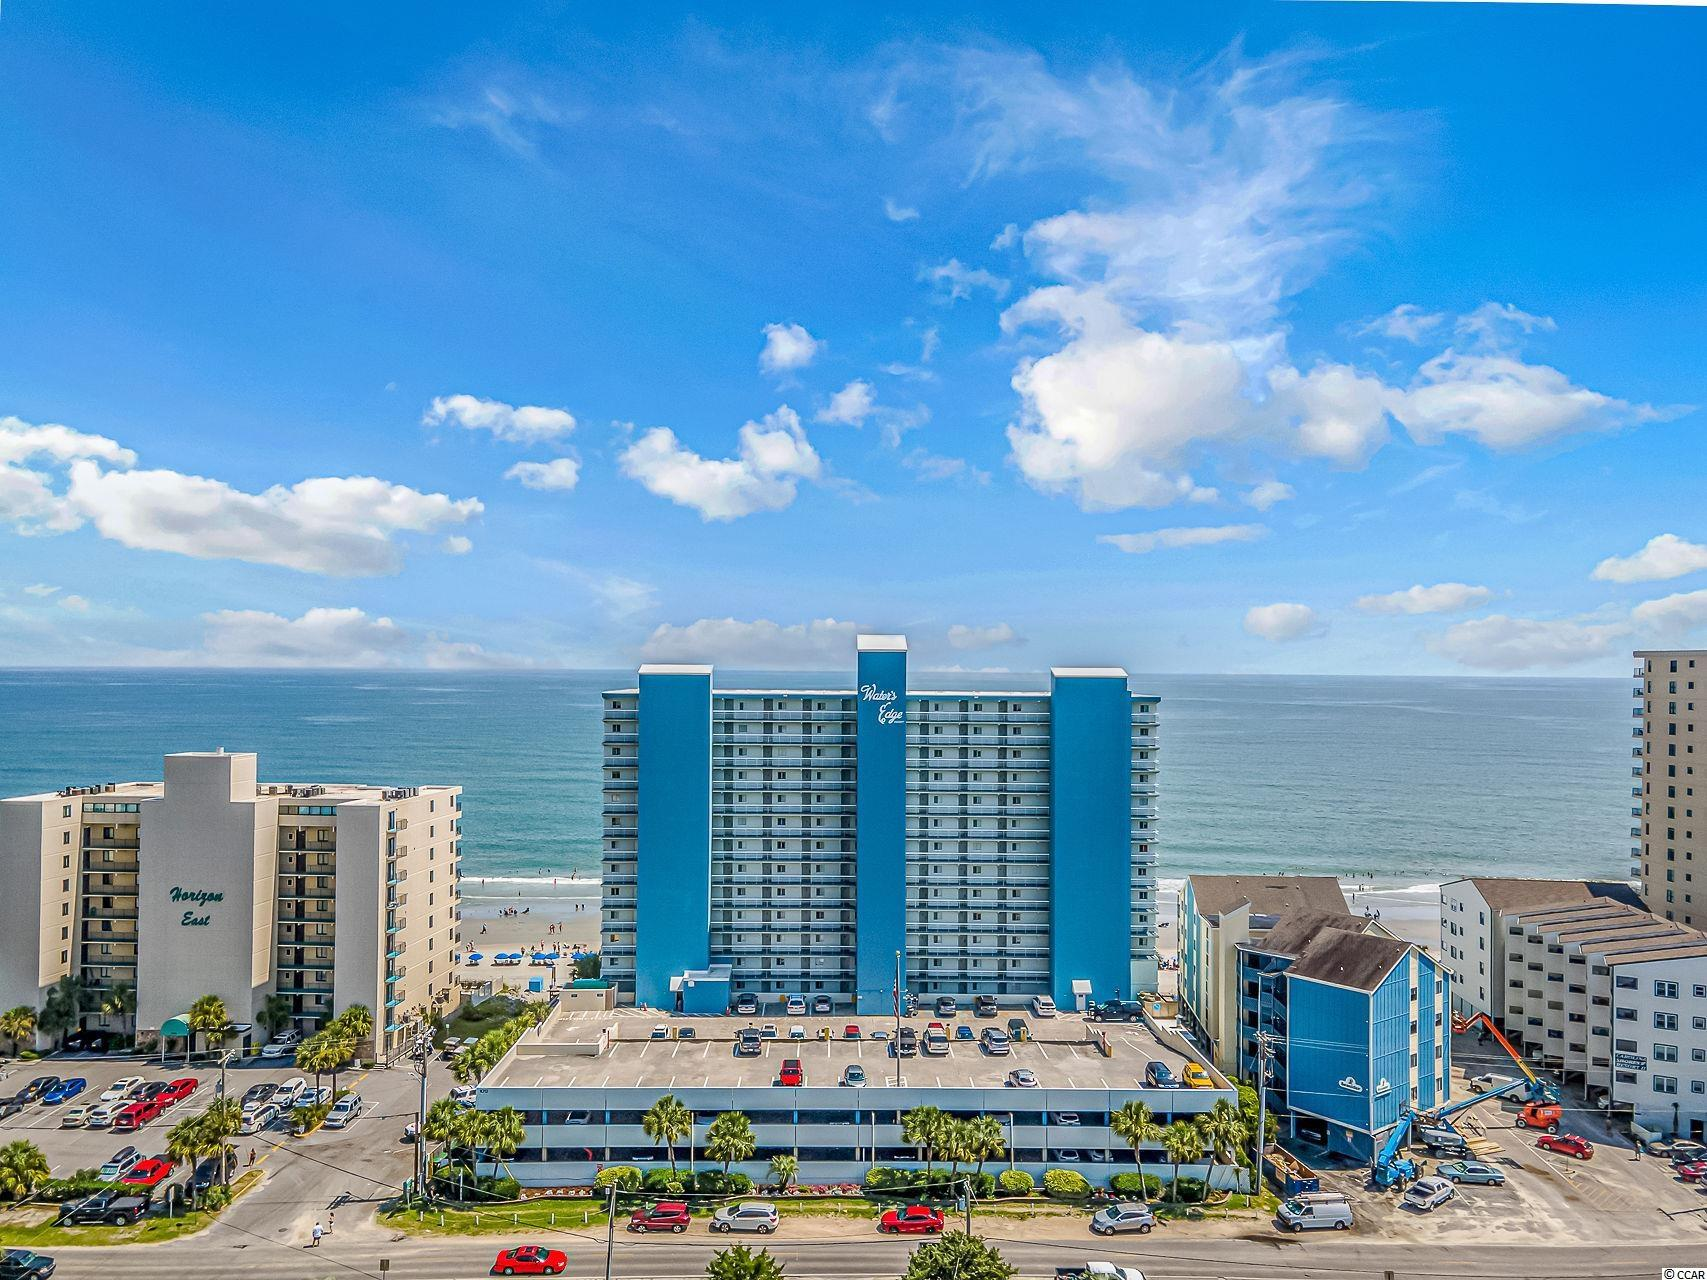 Own a piece of paradise with this 3 bedroom, 2.5 bath oceanfront condo available in the Water's Edge building in Garden City. Enjoy the oceanfront views from the balconies located off the living room and master bedroom! This condo has all the space you need and comes fully furnished - just pack your personal items and move right in! The full kitchen features plenty of cabinet and counter space, with a work island, tiled backsplash, and breakfast bar. 3 bedrooms allows for plenty of room for guests to come visit. Water's Edge resort is just steps from the beautiful Atlantic Ocean, and has plenty of amenities including multiple swimming pools, hot tub, pool deck, fitness center and a convenience store, and cafe. Besides having direct access to the beach, Water's Edge is also located near plenty of shopping, dining and entertainment options. This would make a great primary residence, 2nd home or investment opportunity. Measurements are not guaranteed and are the buyer's responsibility to verify.